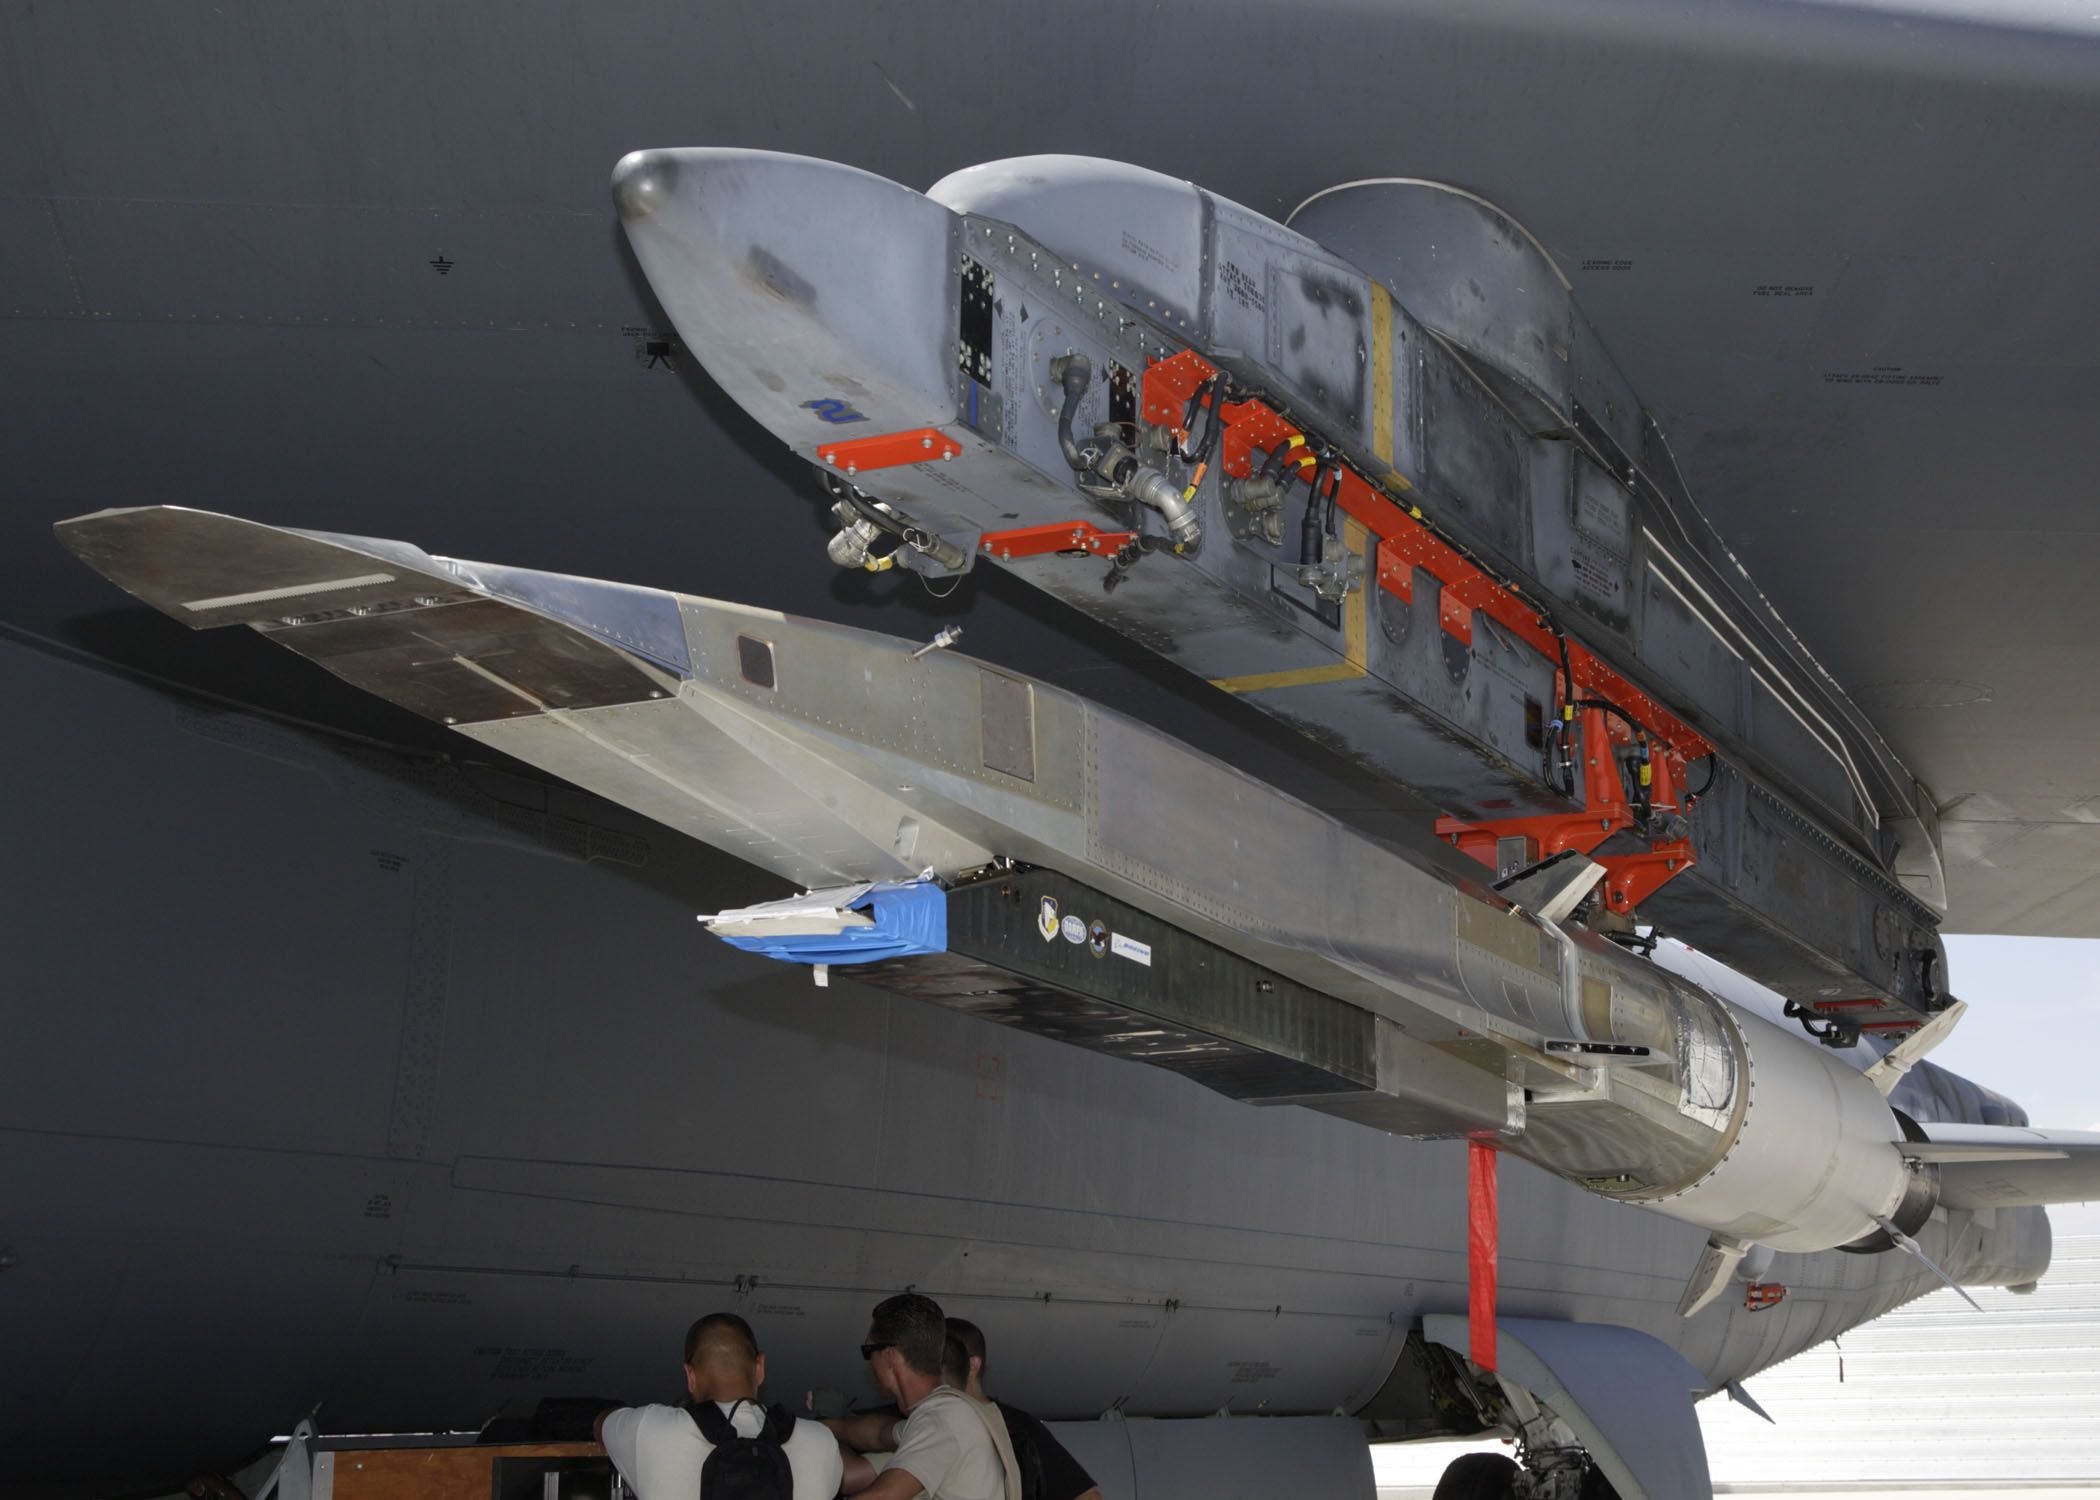 The Air Force Is Working on 'Hacksaw,' a Mach 5 Missile